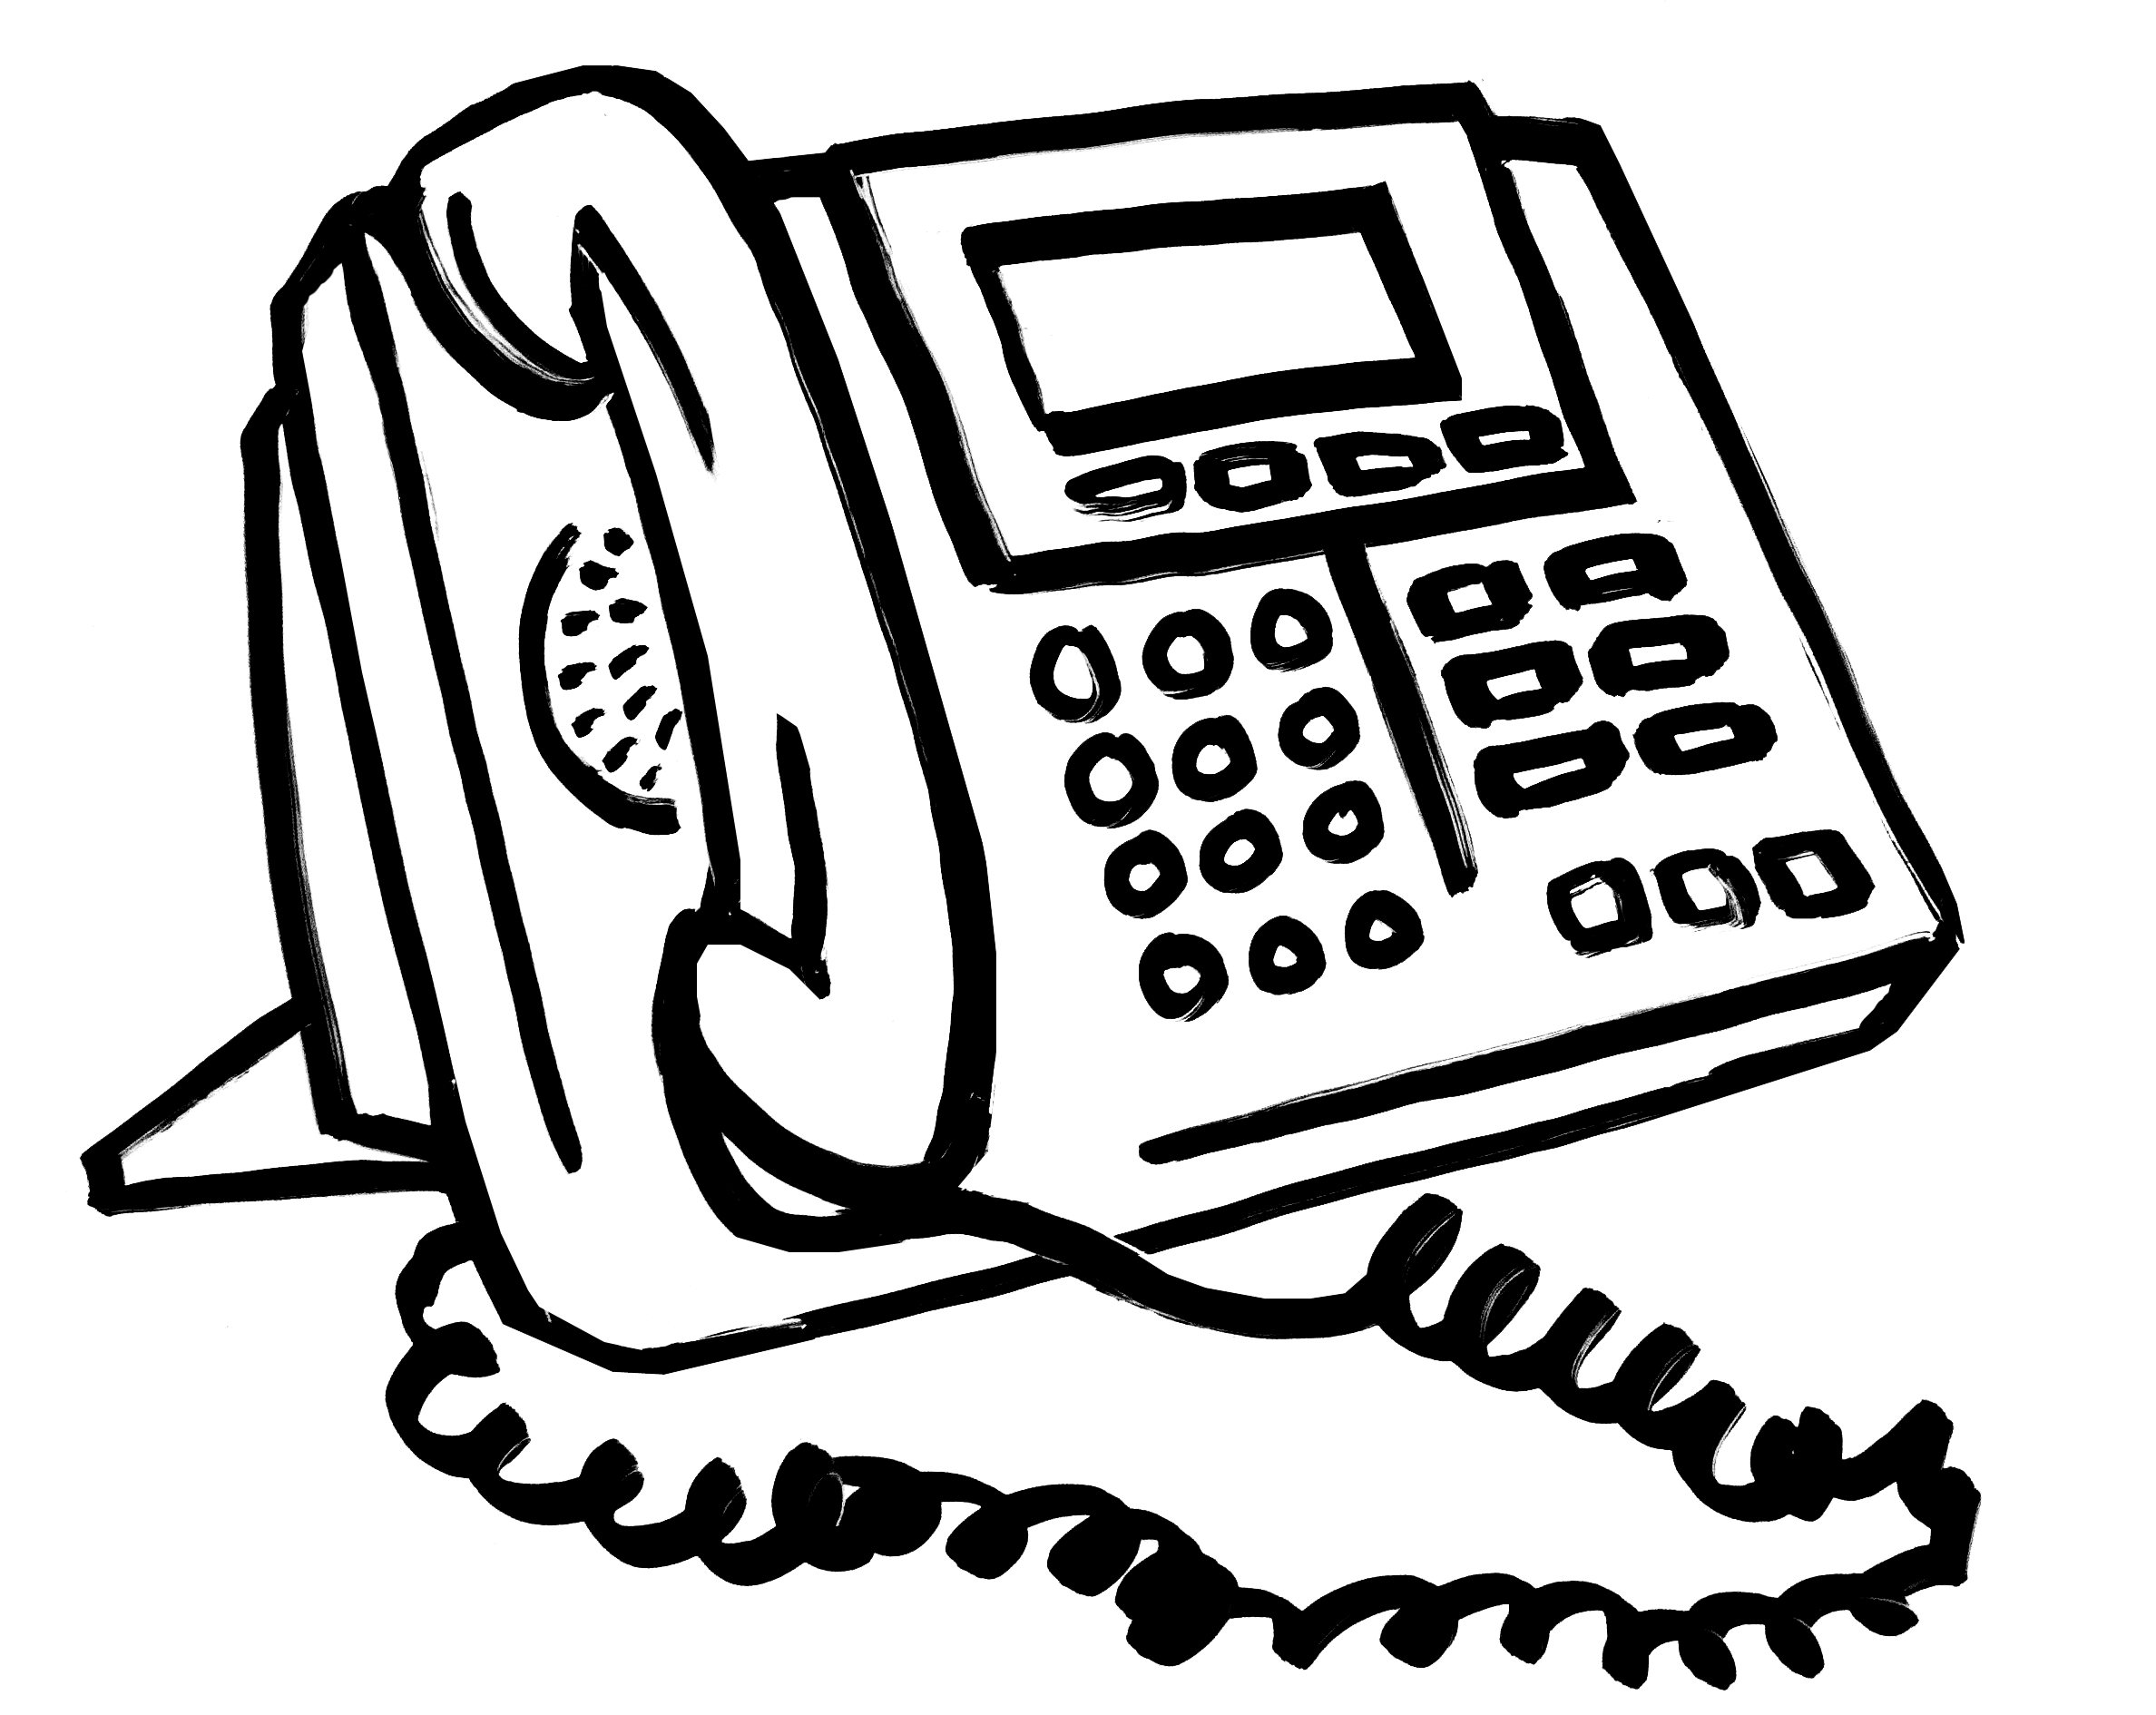 Office Phone Call free clipart.